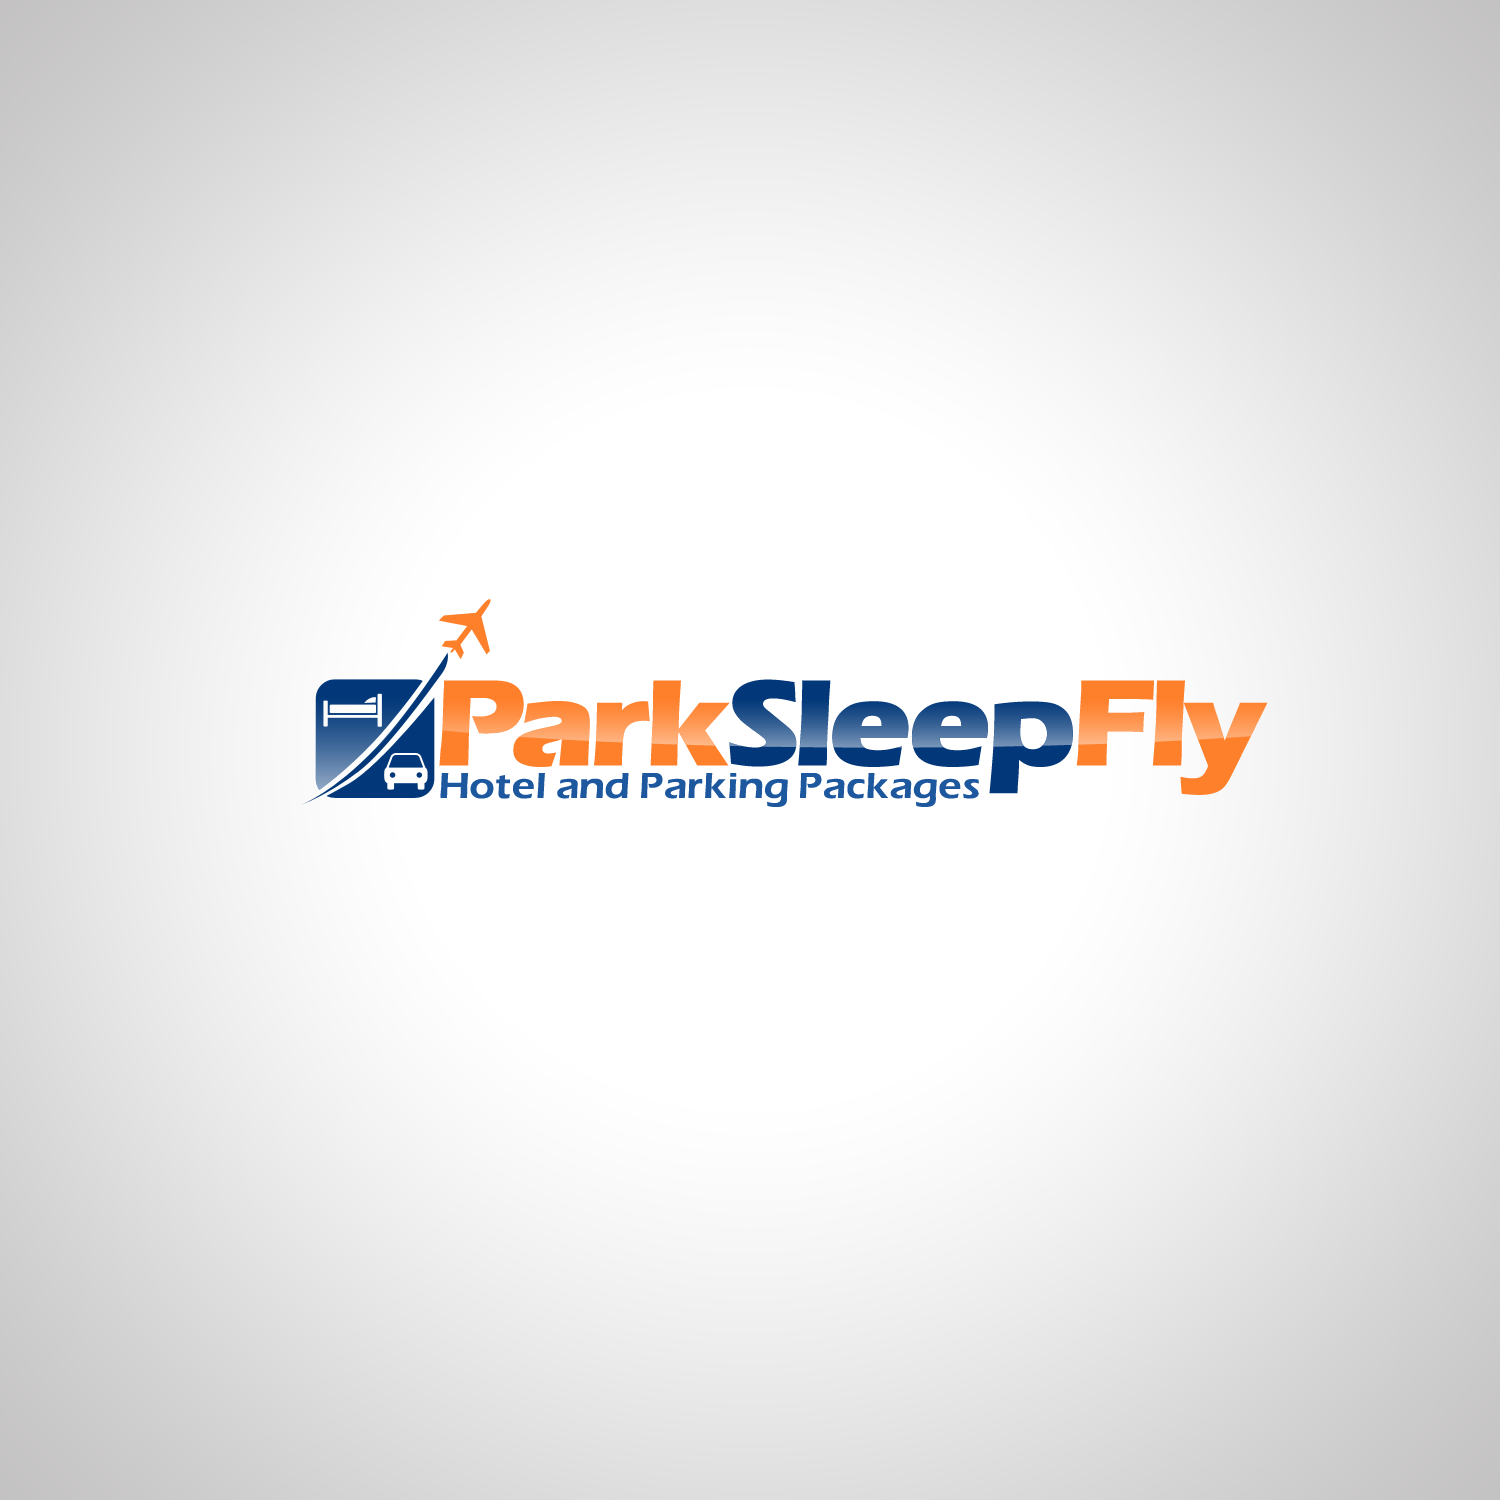 Logo design by dbotdesign ©